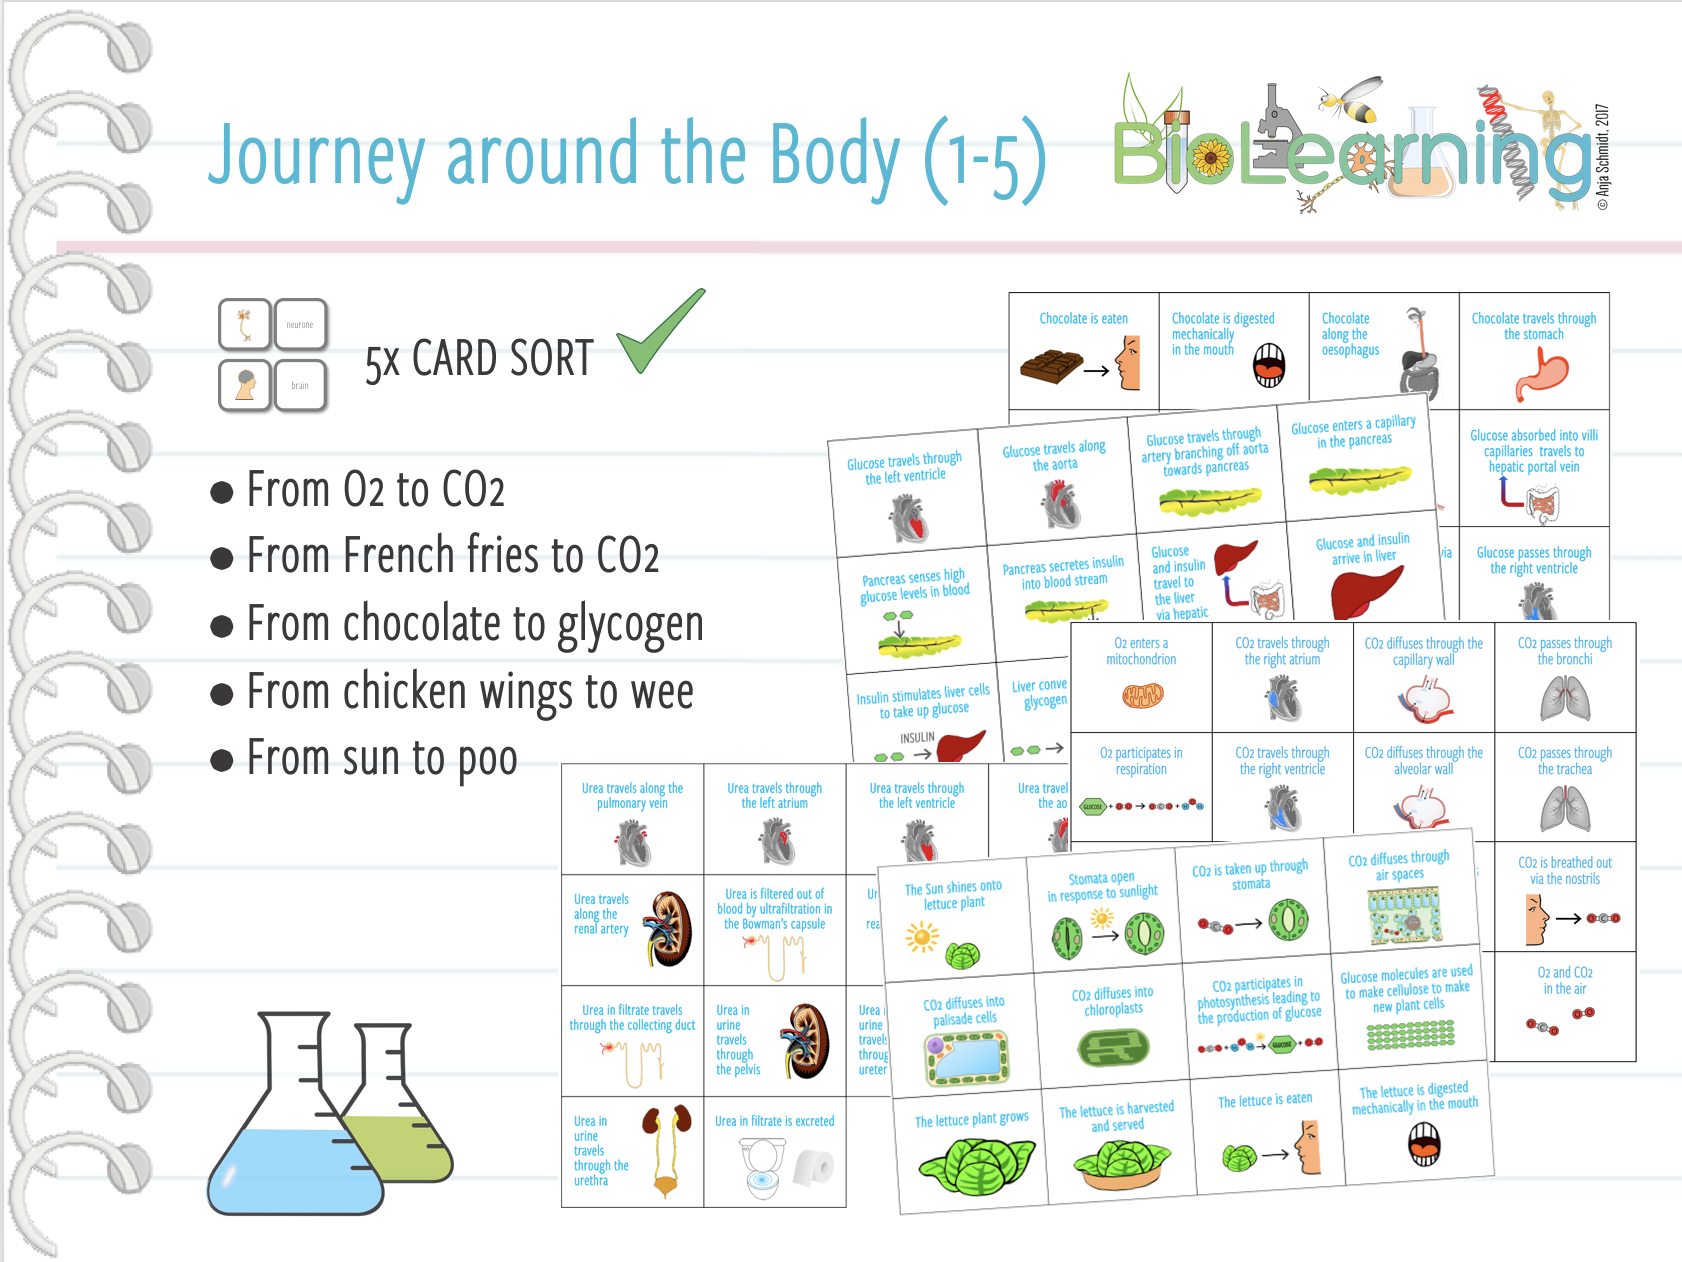 Journey around the body (1-5) - 5x Card sort (KS3/KS4)